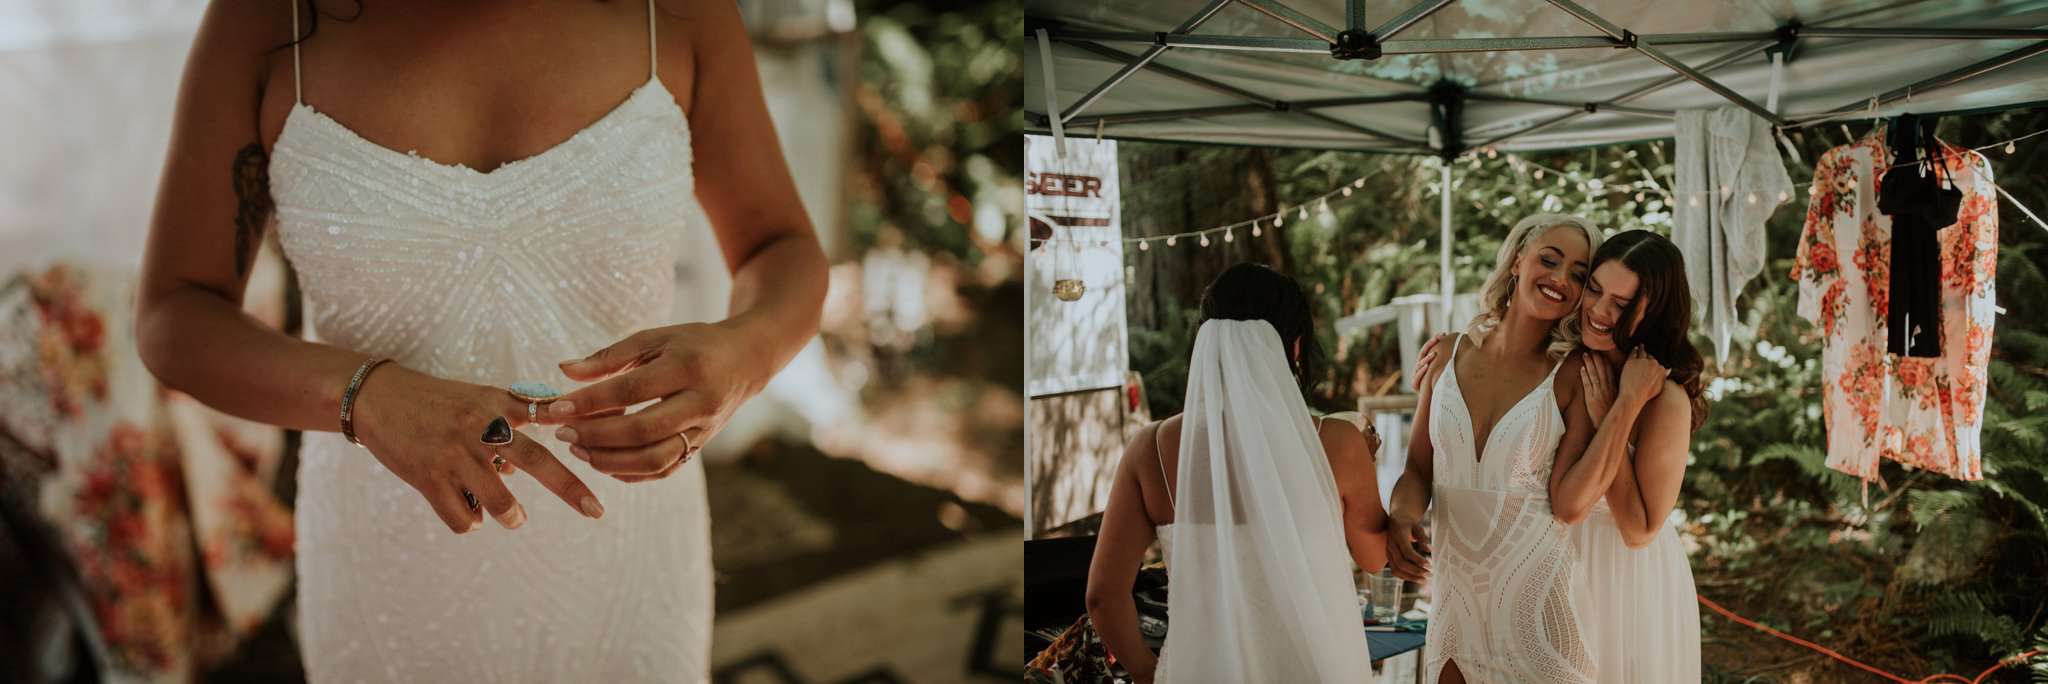 intimate-boho-campfire-wedding-shangri-la-on-the-green-seattle-wedding-photographer-caitlyn-nikula-photography-29.jpg